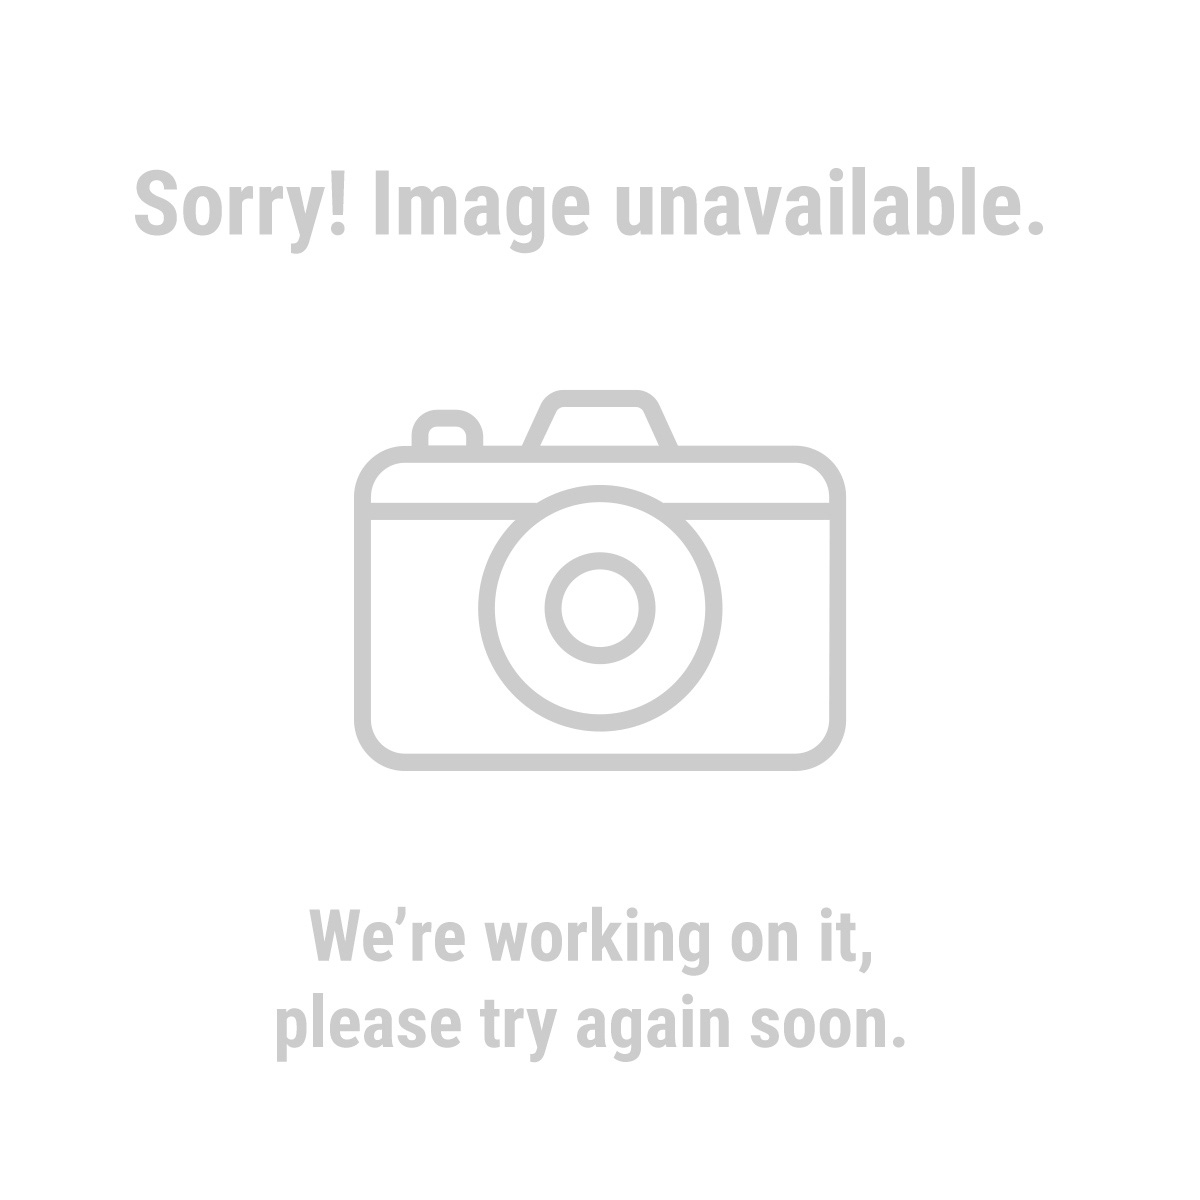 Central Pneumatic 61976 50 ft. x 3/8 in. PVC Air Hose